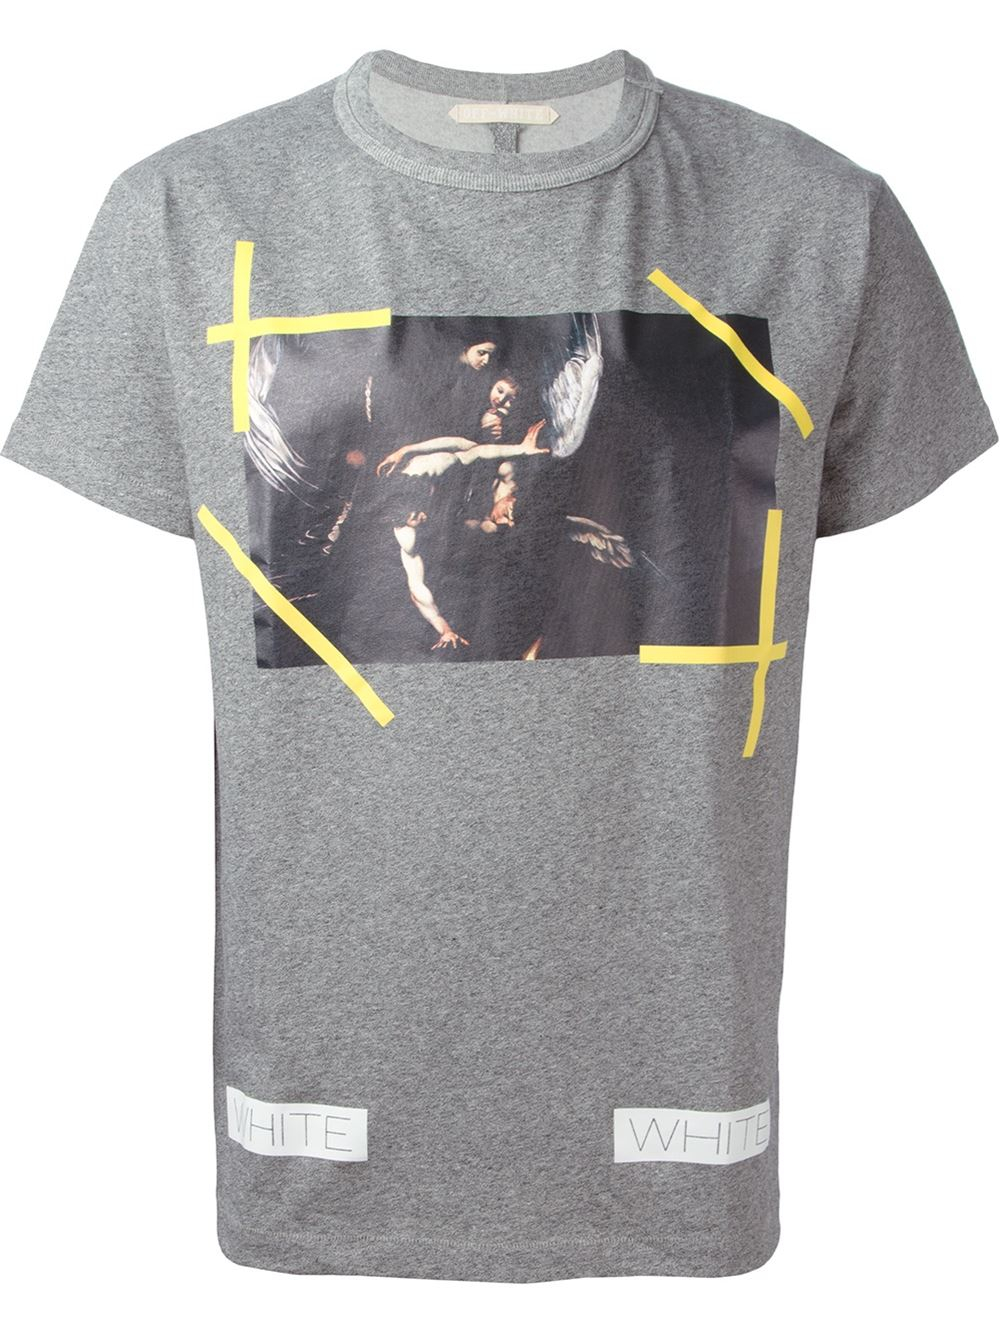 Lyst off white c o virgil abloh printed t shirt in gray for T shirt printing one off